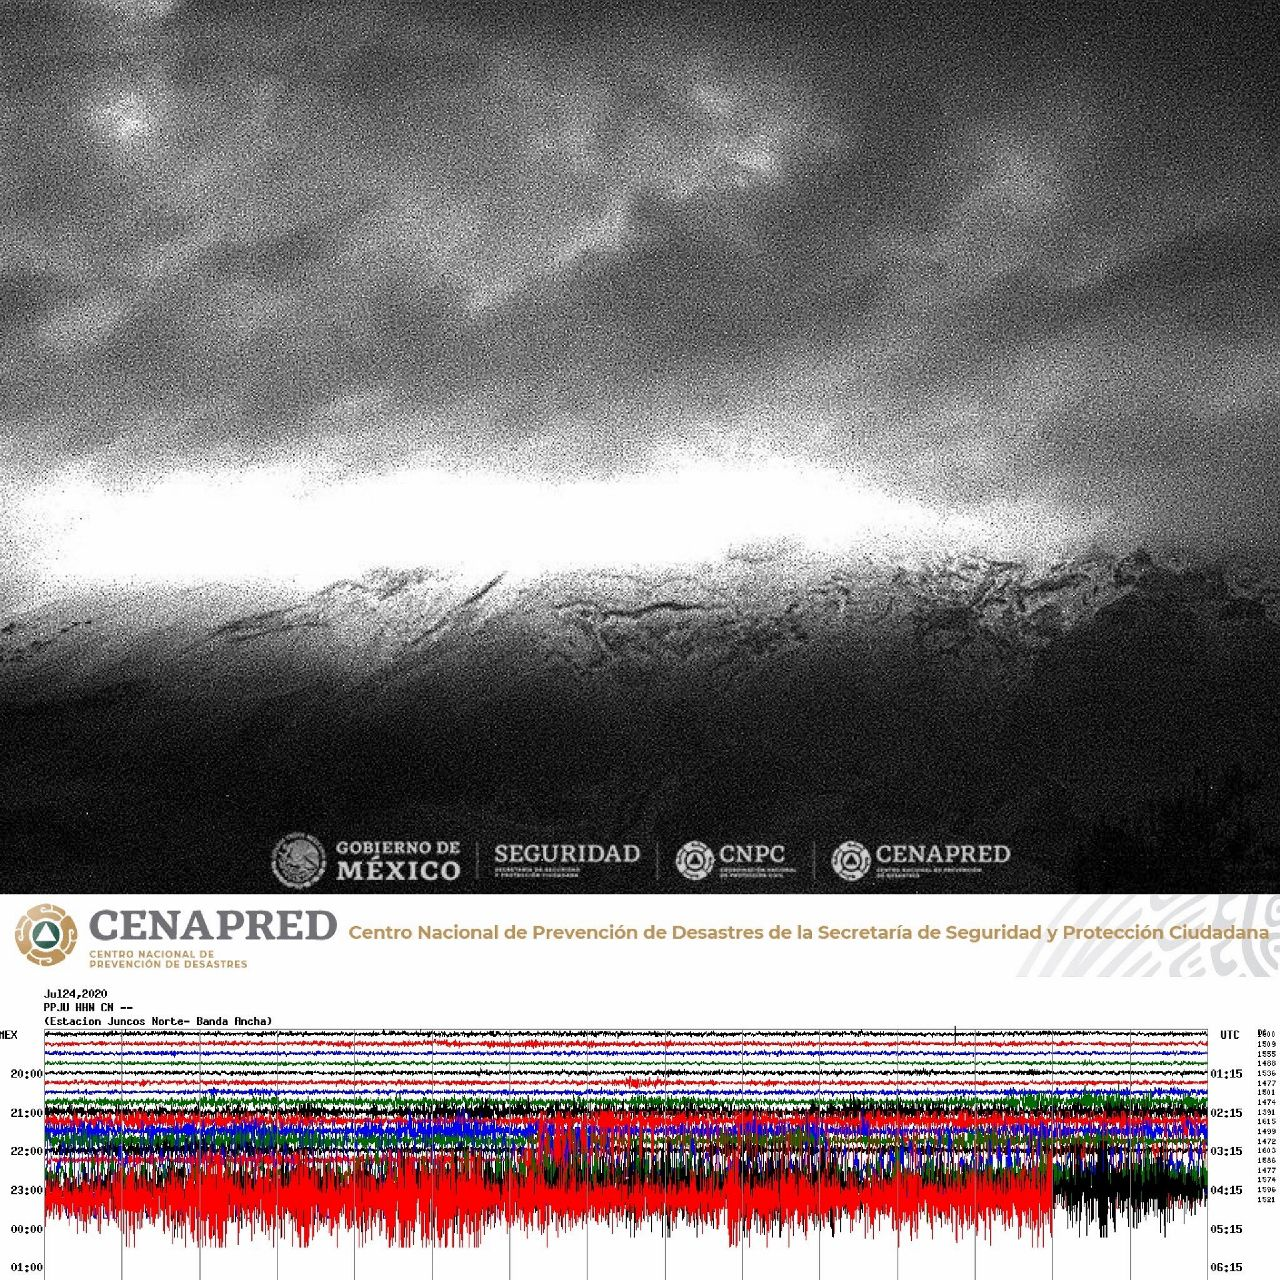 Popocatépetl - 24.07.2020 - rise of the tremor and glow at the top hidden by the rains - Doc. Cenapred